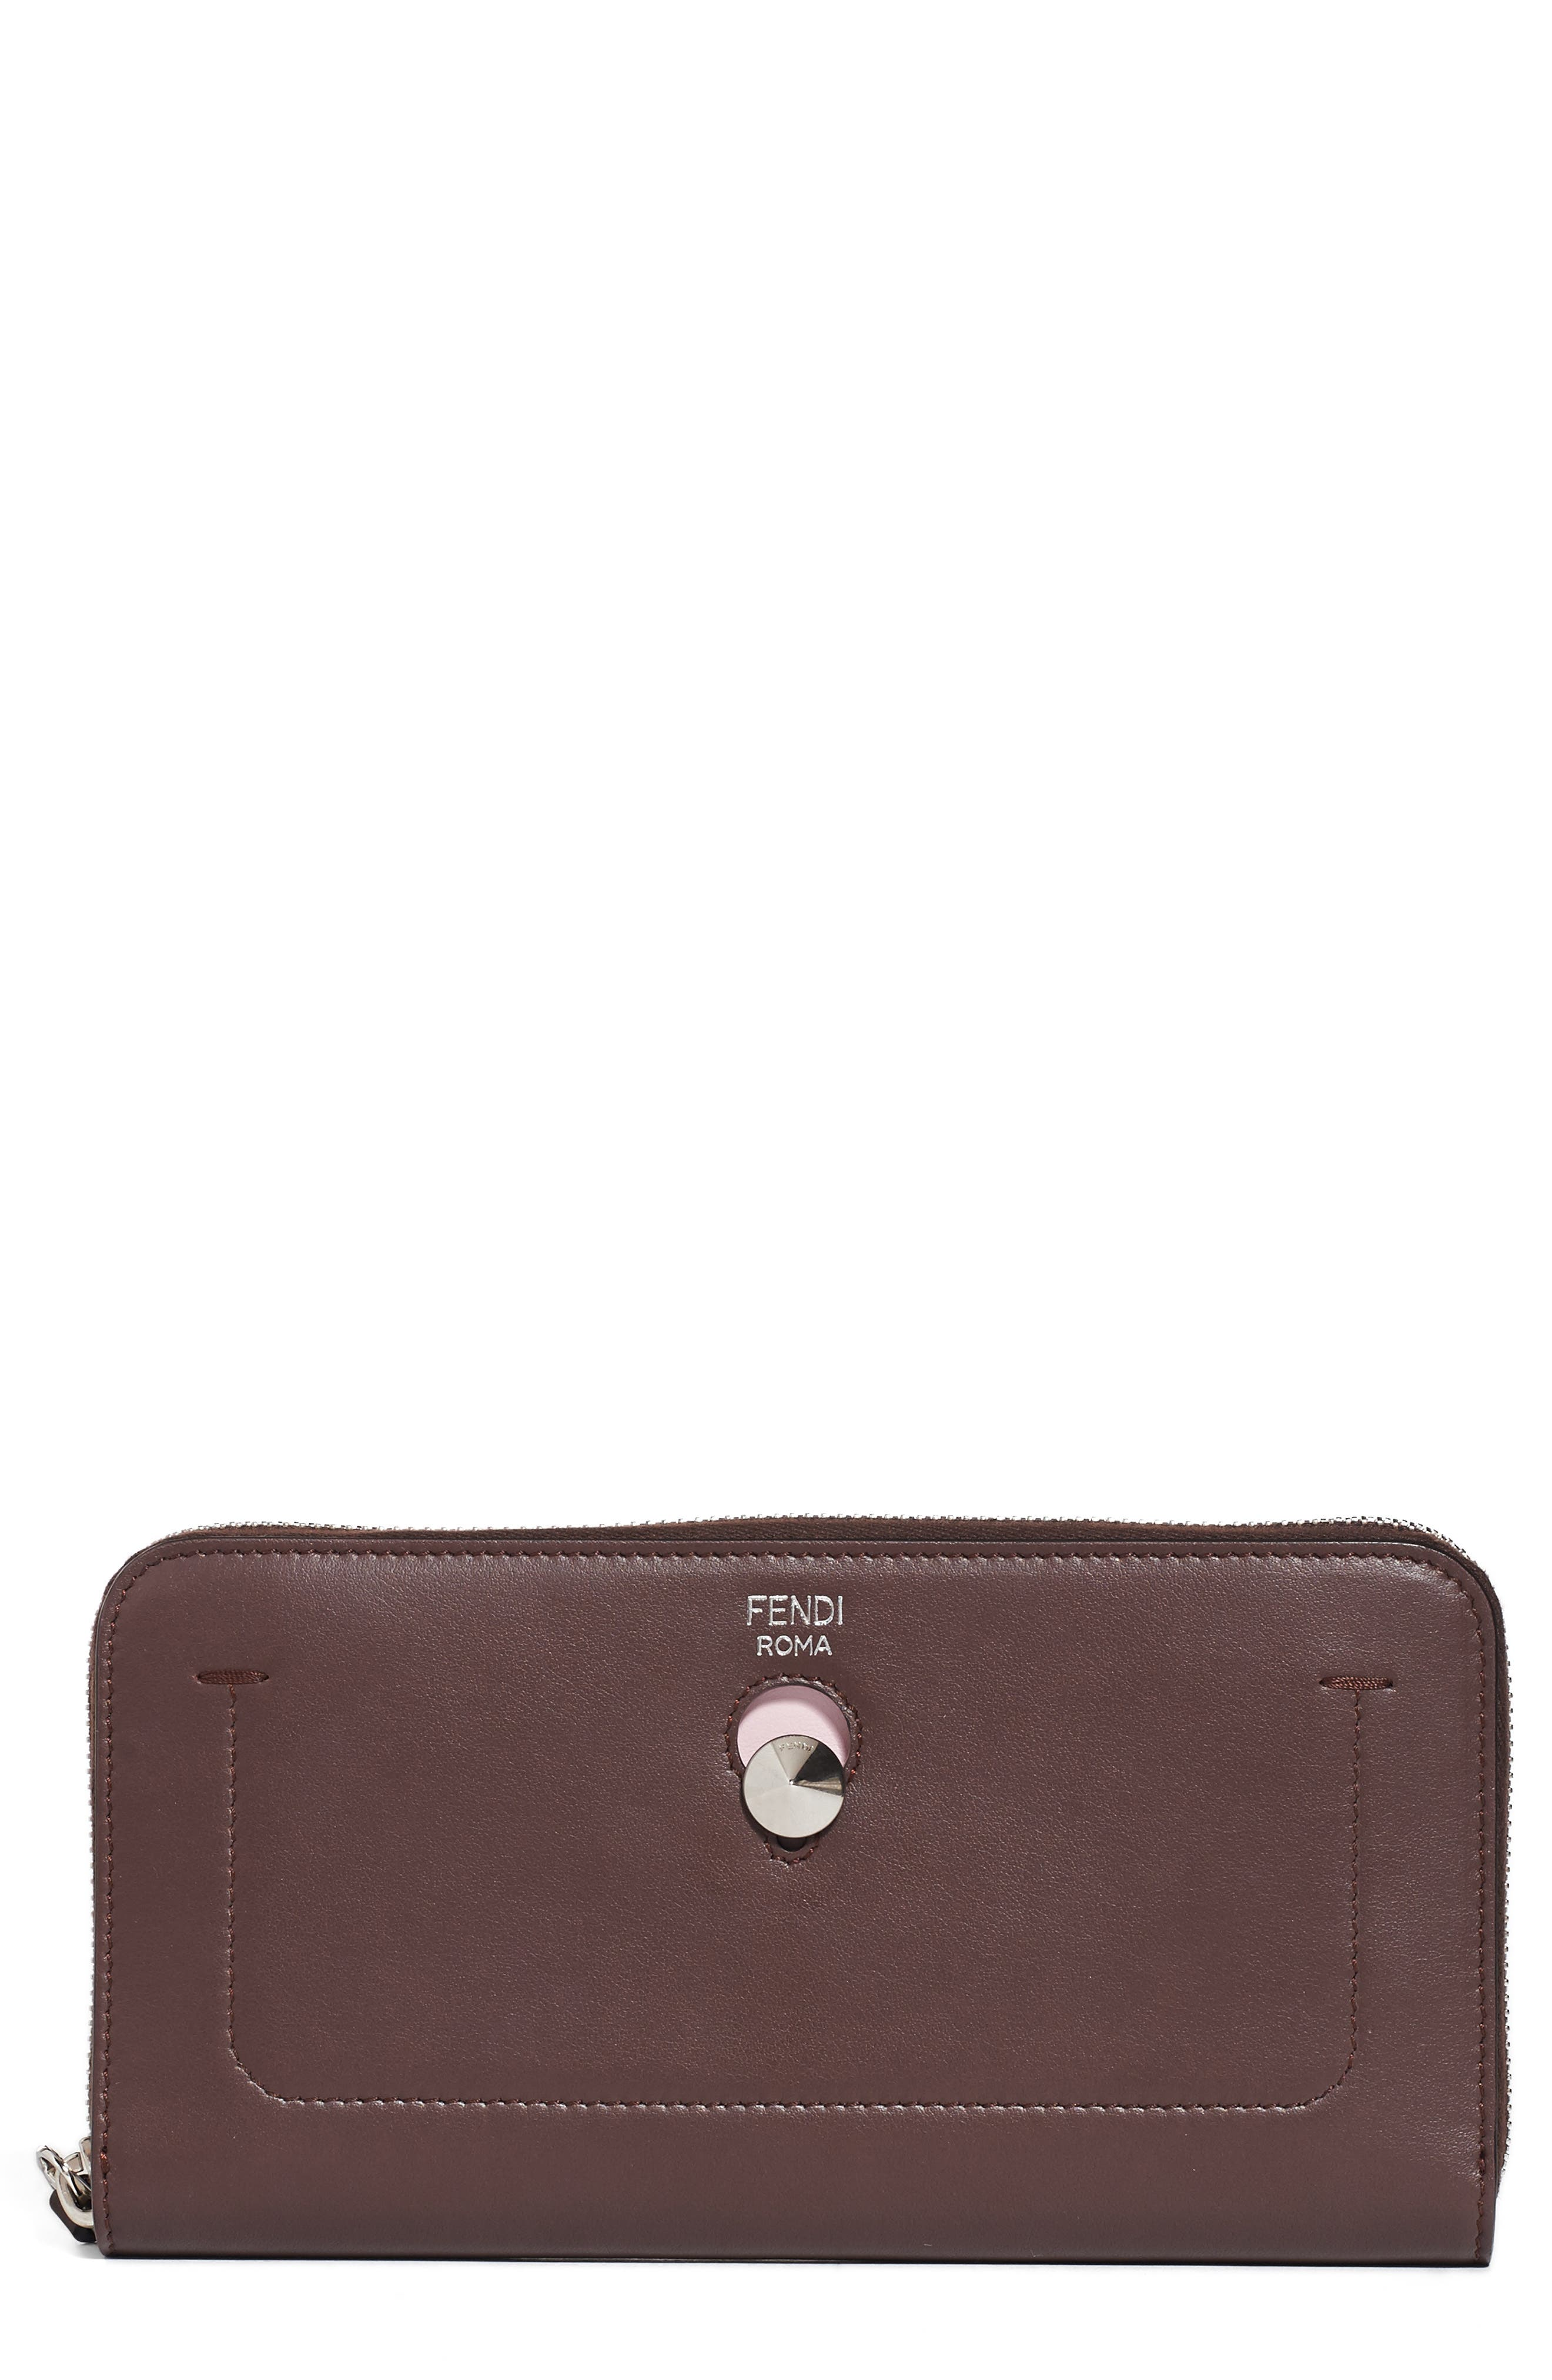 FENDI Dotcom Calfskin Leather Clutch Wallet